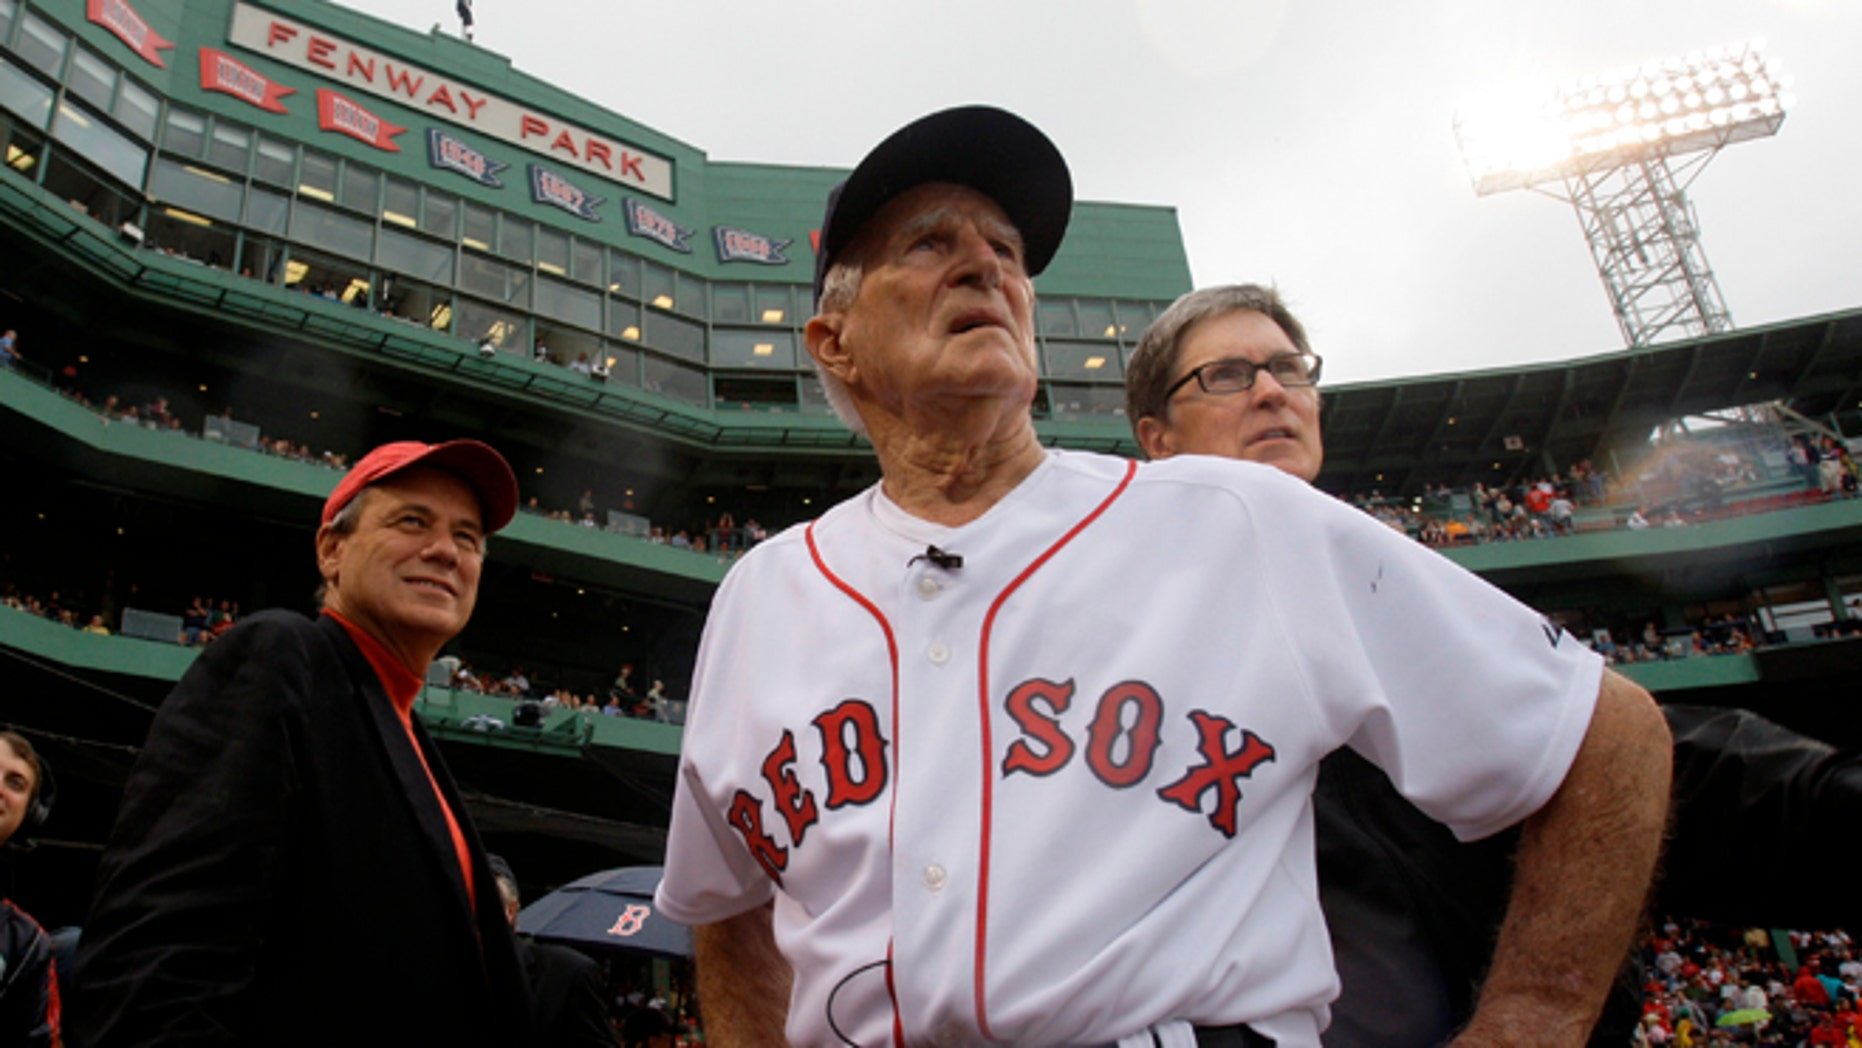 Sept. 28, 2008: Boston Red Sox great Johnny Pesky, center, is flanked by team president Larry Lucchino, left, and owner John Henry as they look past Pesky's Pole where Pesky's No. 6 adorns the upper deck during a ceremony to retire his number.